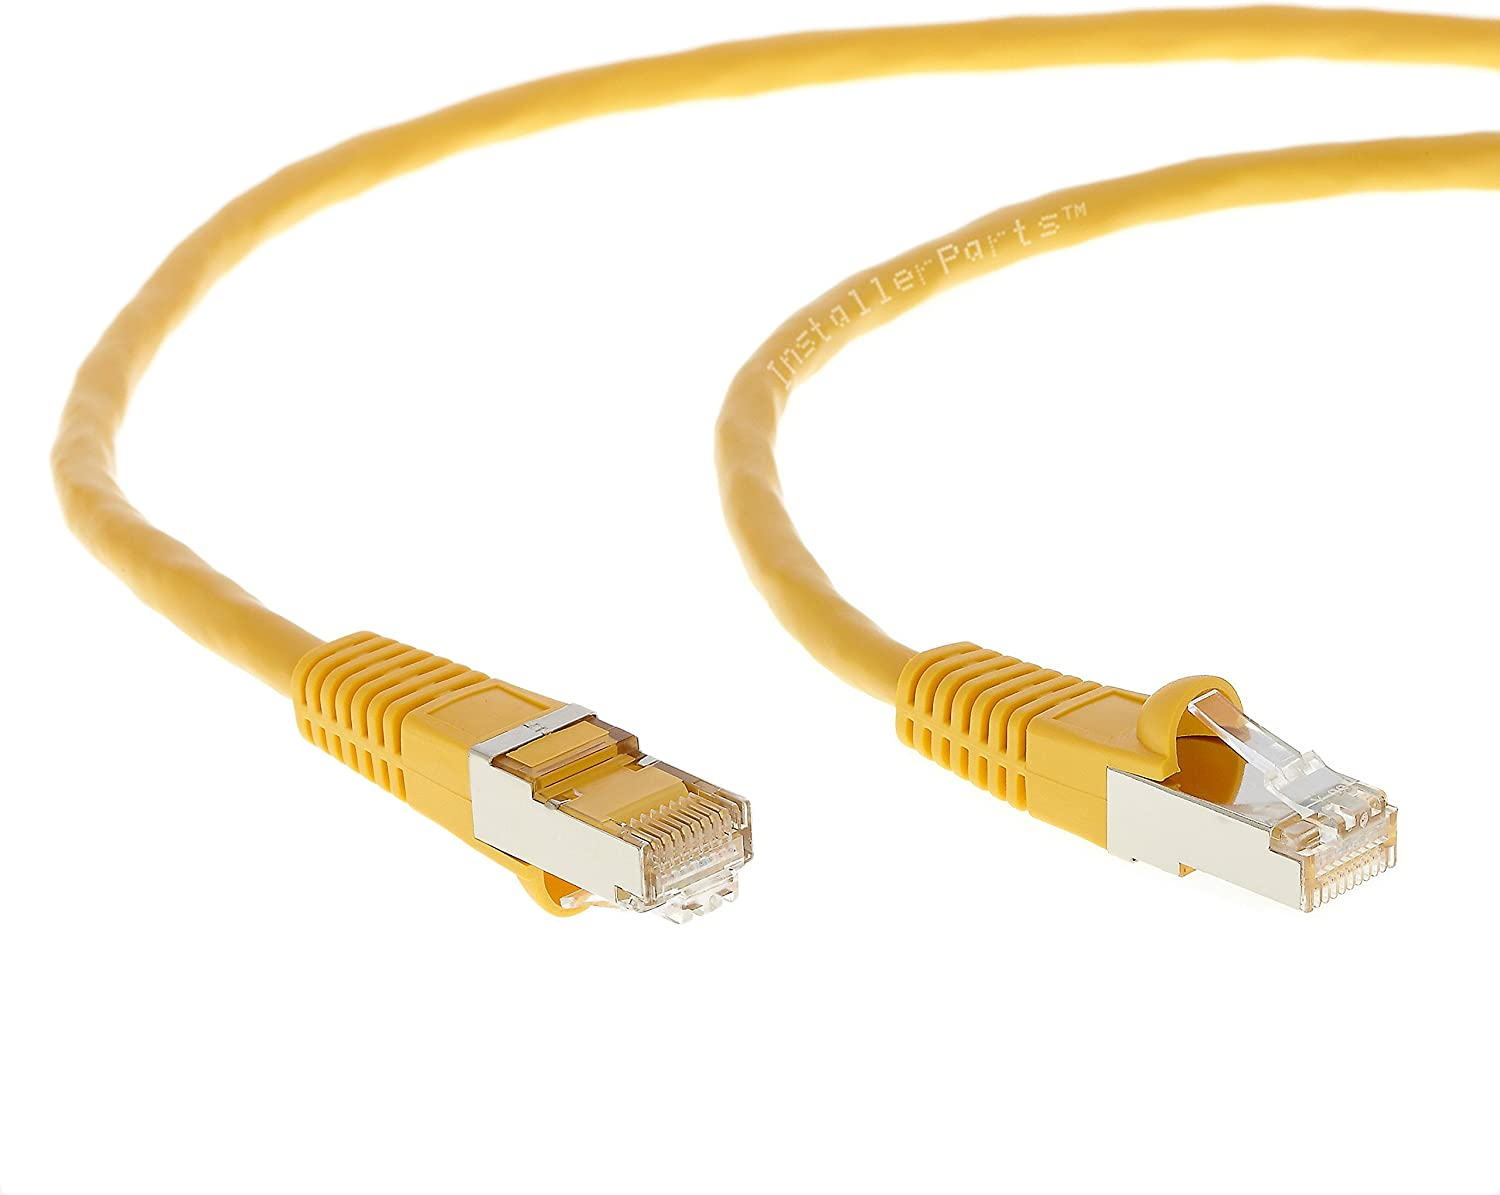 Ethernet Cable CAT5E Cable Shielded 350MHZ Professional Series 1Gigabit//Sec Network//Internet Cable FTP Booted 200 FT Yellow 5 Pack InstallerParts